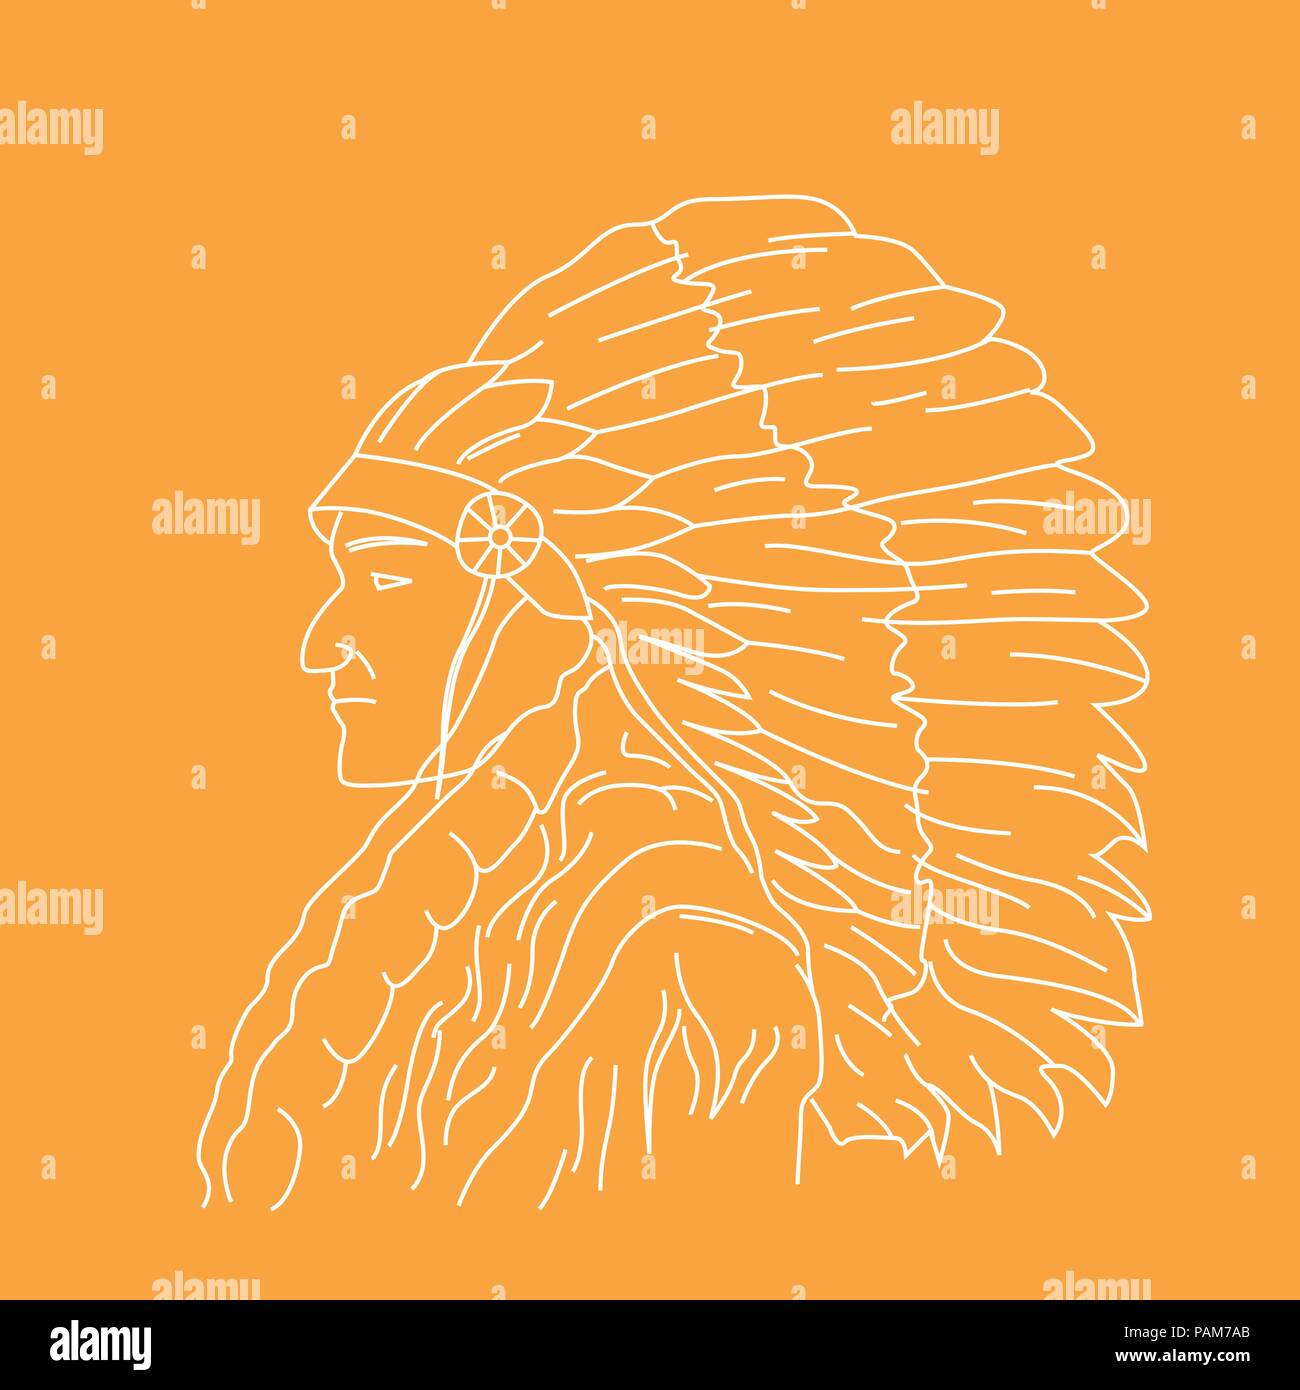 Portrait of Indian chief - head profile of tribal chief - Stock Image